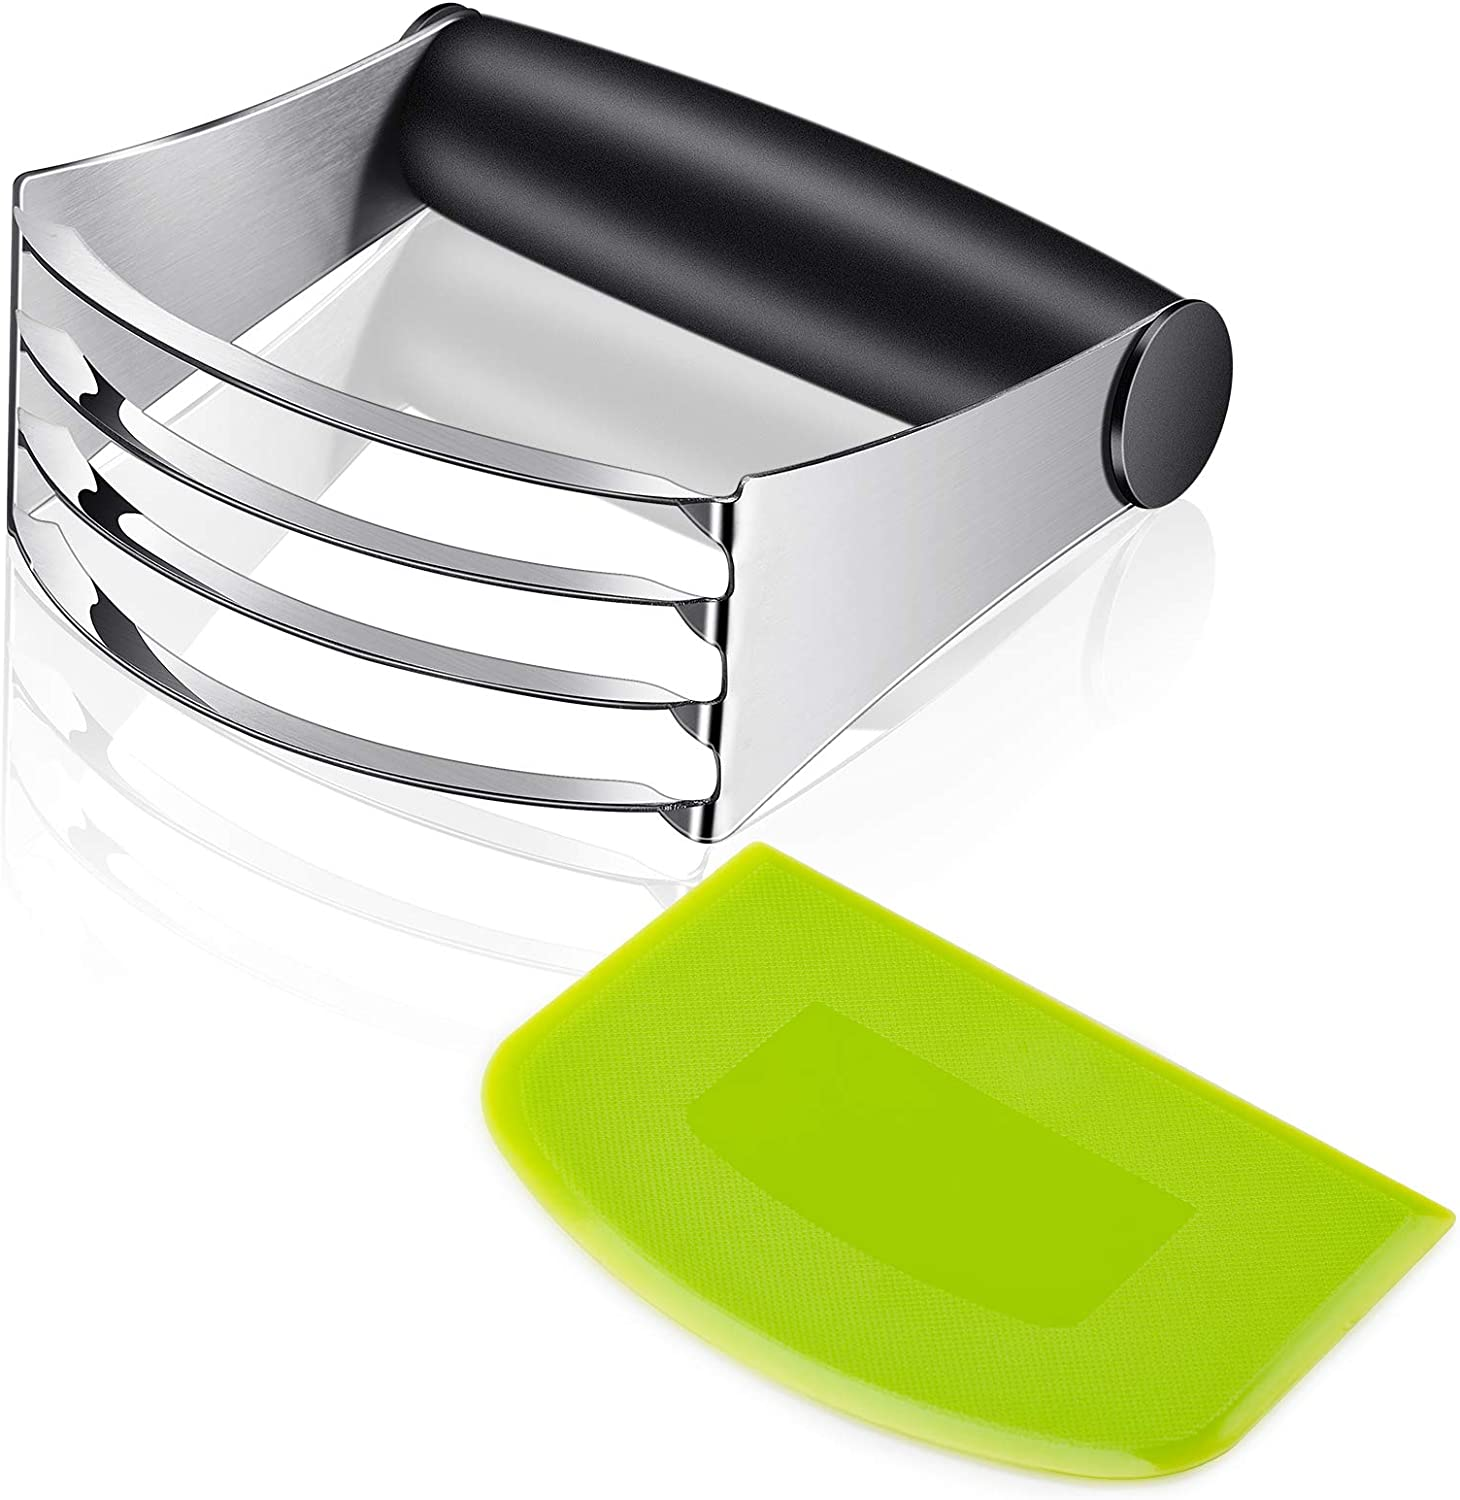 YasTant Top Quality Pastry Cutter – Heavy Duty Dough and Pastry Blender with Sturdy Blades and Ergonomic Grip, Easy Mix Stainless Steel Dough Cutters for Cold Butter, Pie Crust, Scones and More